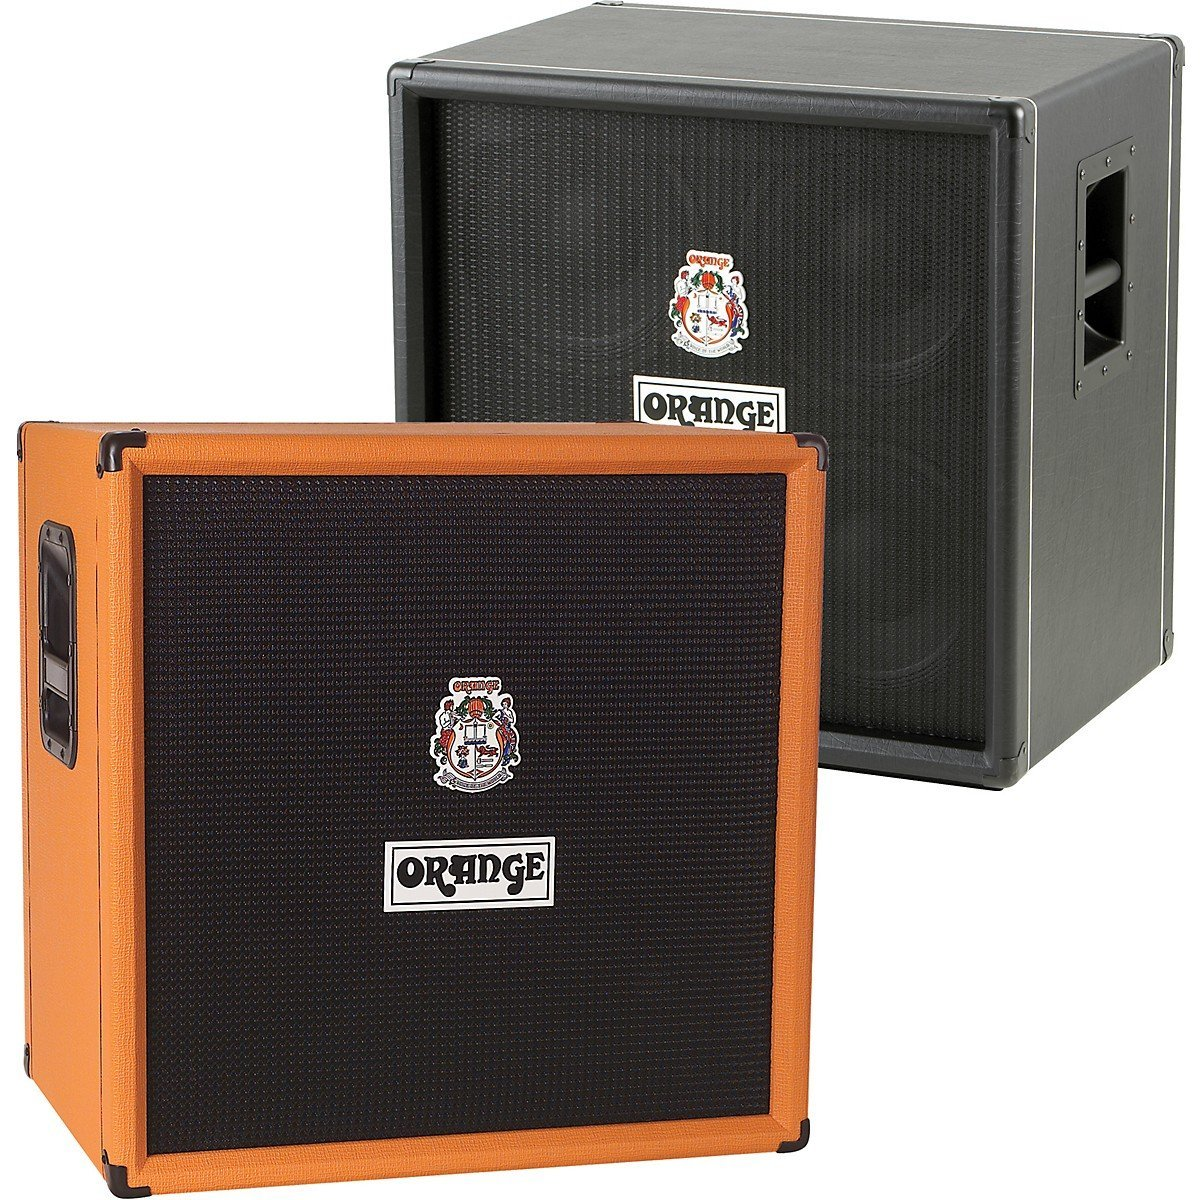 Orange OBC410 Speaker Cabs